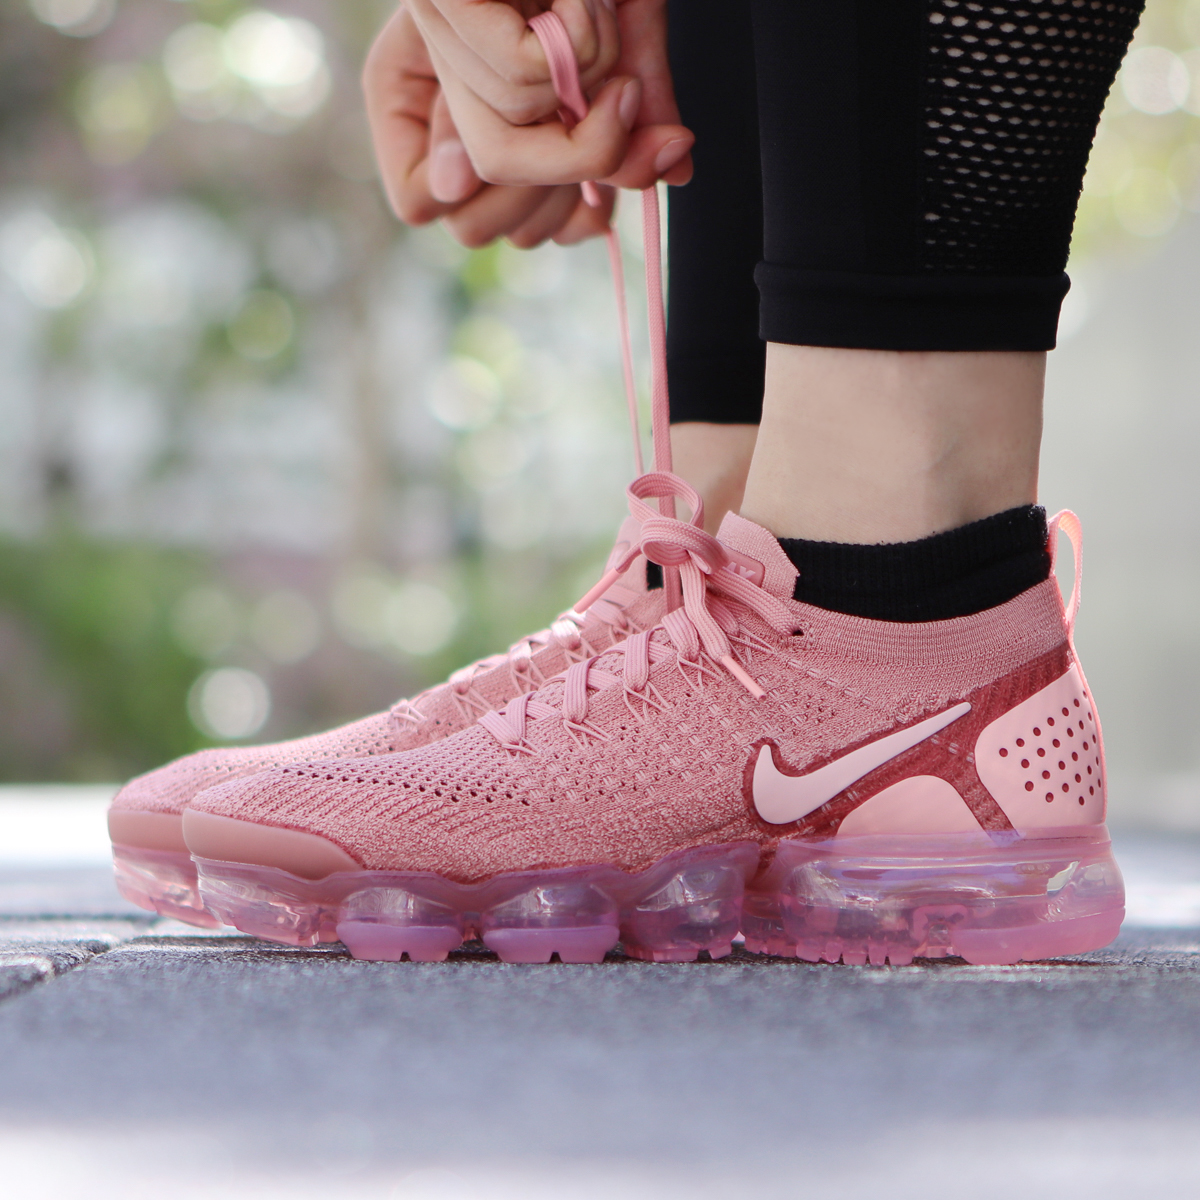 huge selection of 9cad0 558c6 norway pink nike shoes vapormax d9359 980d6